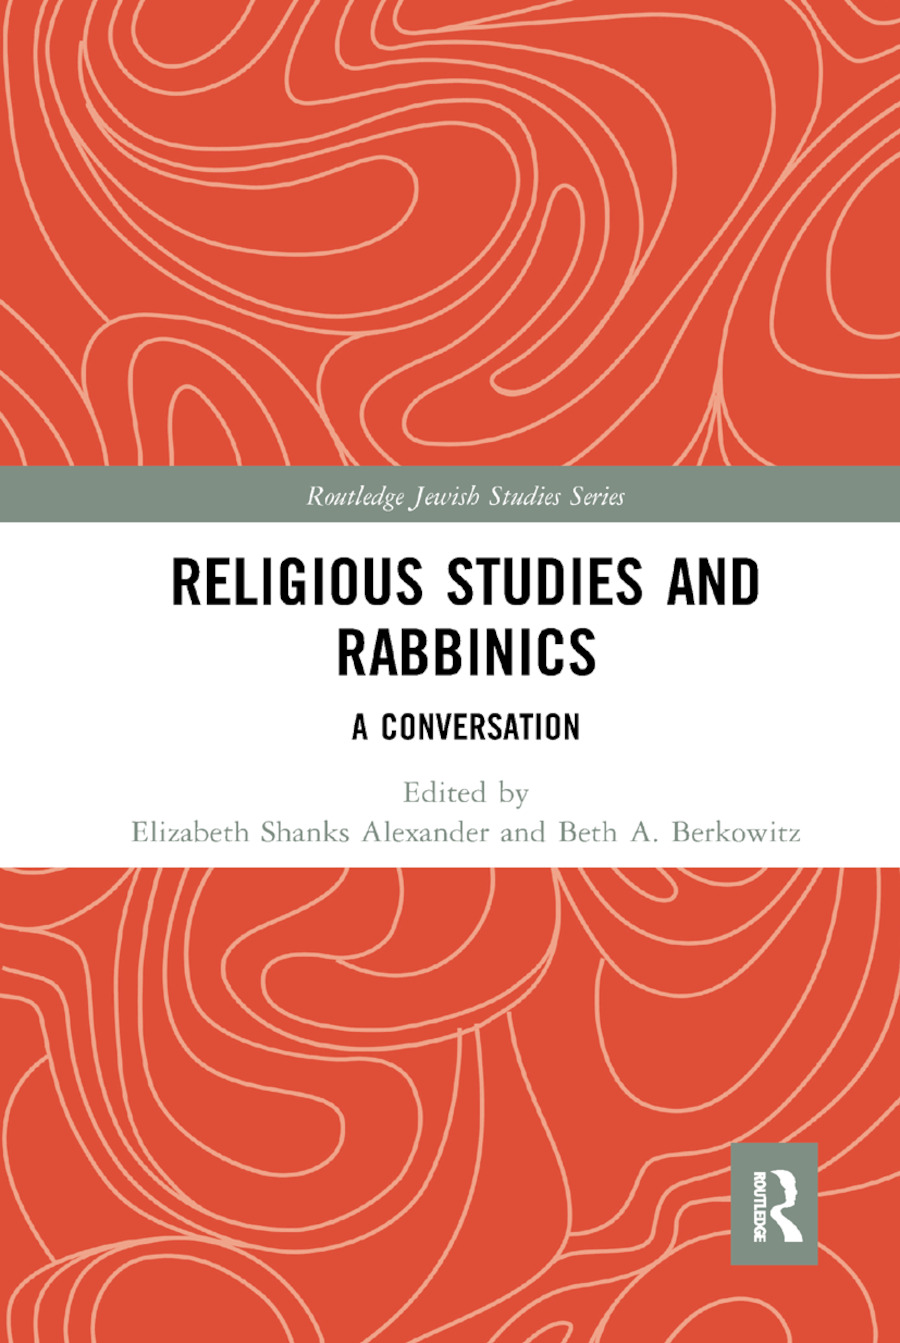 Religious Studies and Rabbinics